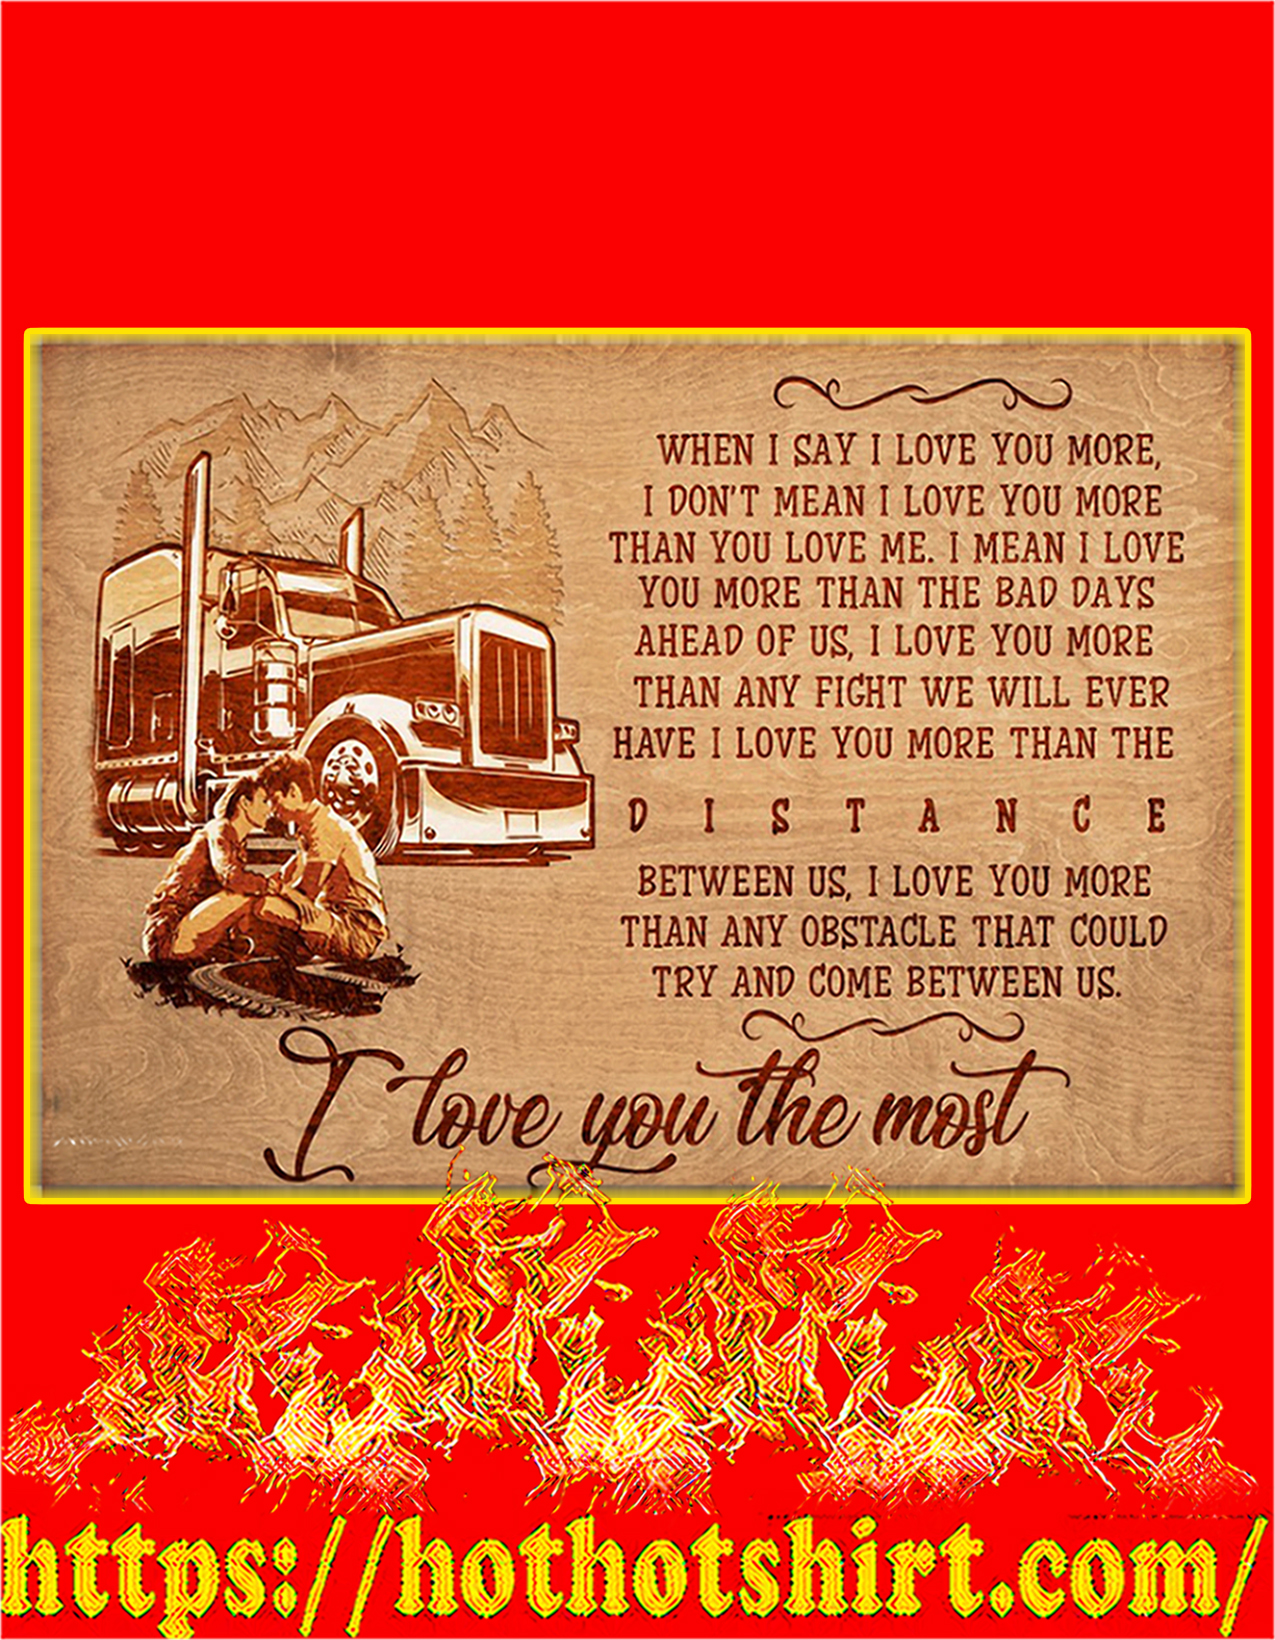 Trucker I love you the most poster - A2